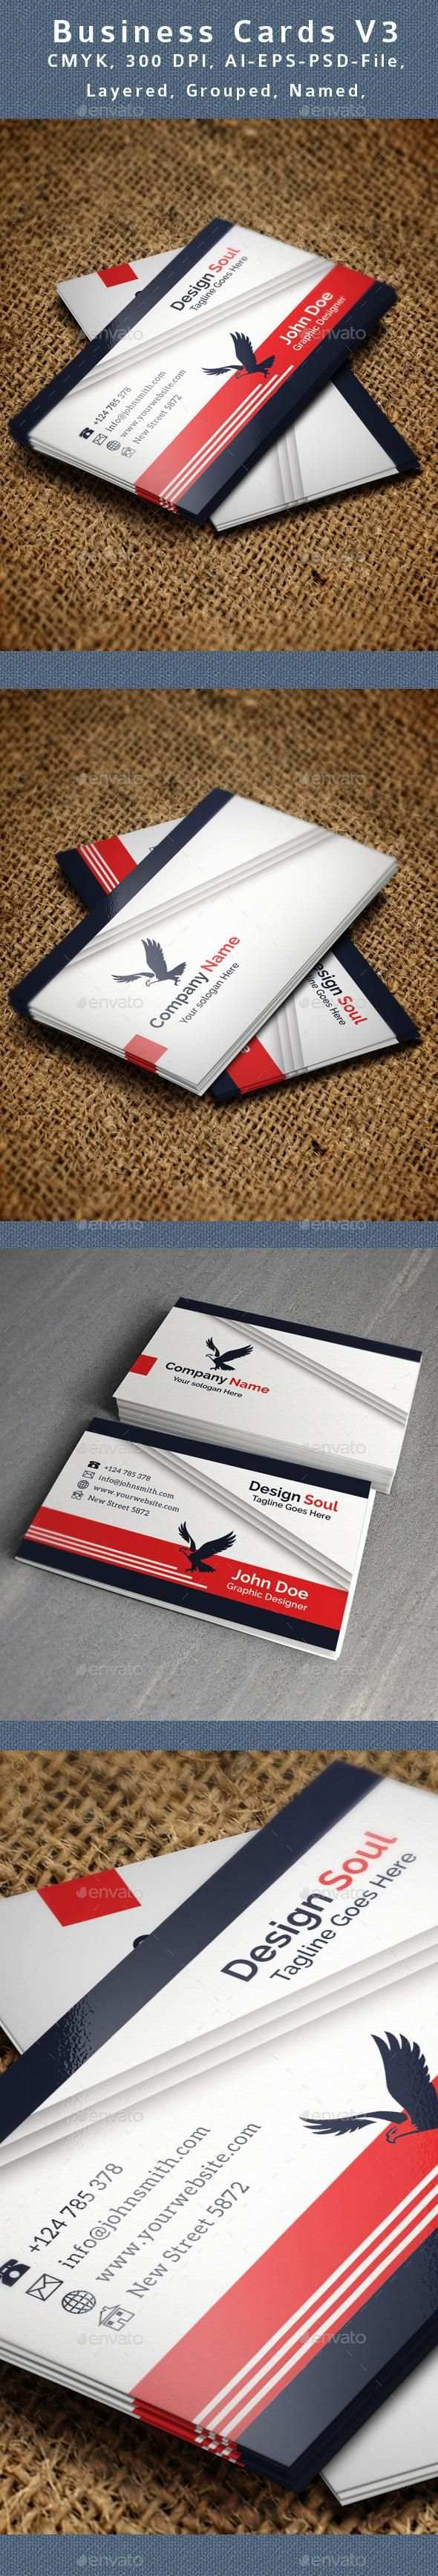 Creative Business Card V3  #template #creative #business